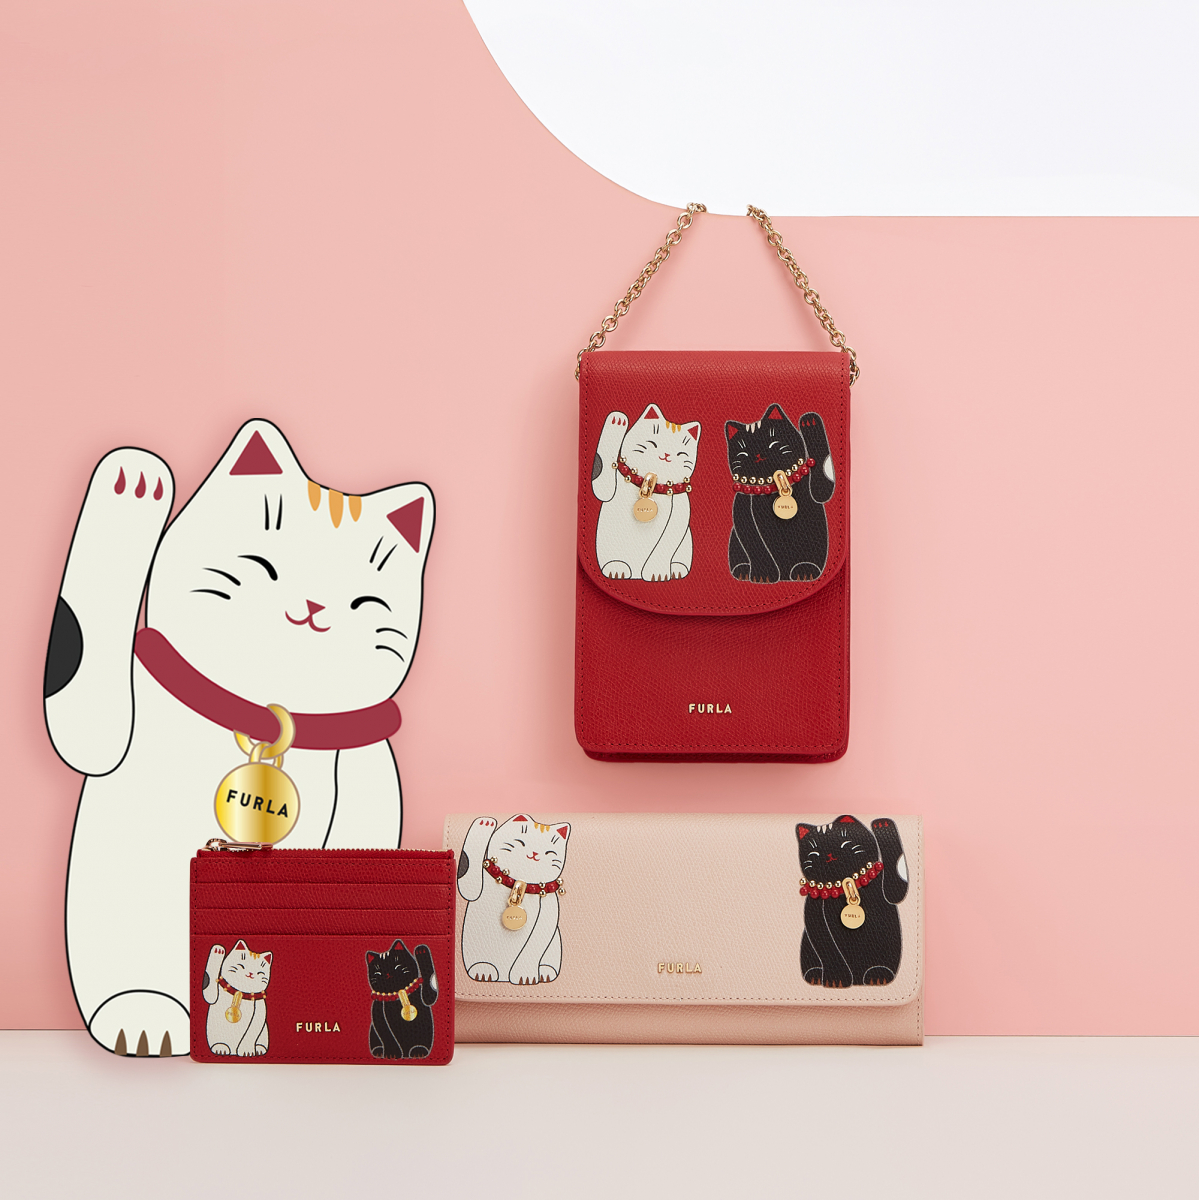 FURLA LITTLE CATS MINI CROSS BODY(H13.5×W17×D7cm)¥49,000/フルラ ジャパン  FURLA LITTLE CATS PHONE HOLDER(H17×W11cm)¥35,000/フルラ ジャパン  FURLA LITTLE CATS CARD CASE(H8×W10.5cm)¥16,000/フルラ ジャパン  FURLA LITTLE CATS CONTINENTAL WALLET(H9.5×W19.5cm)¥35,000/フルラ ジャパン